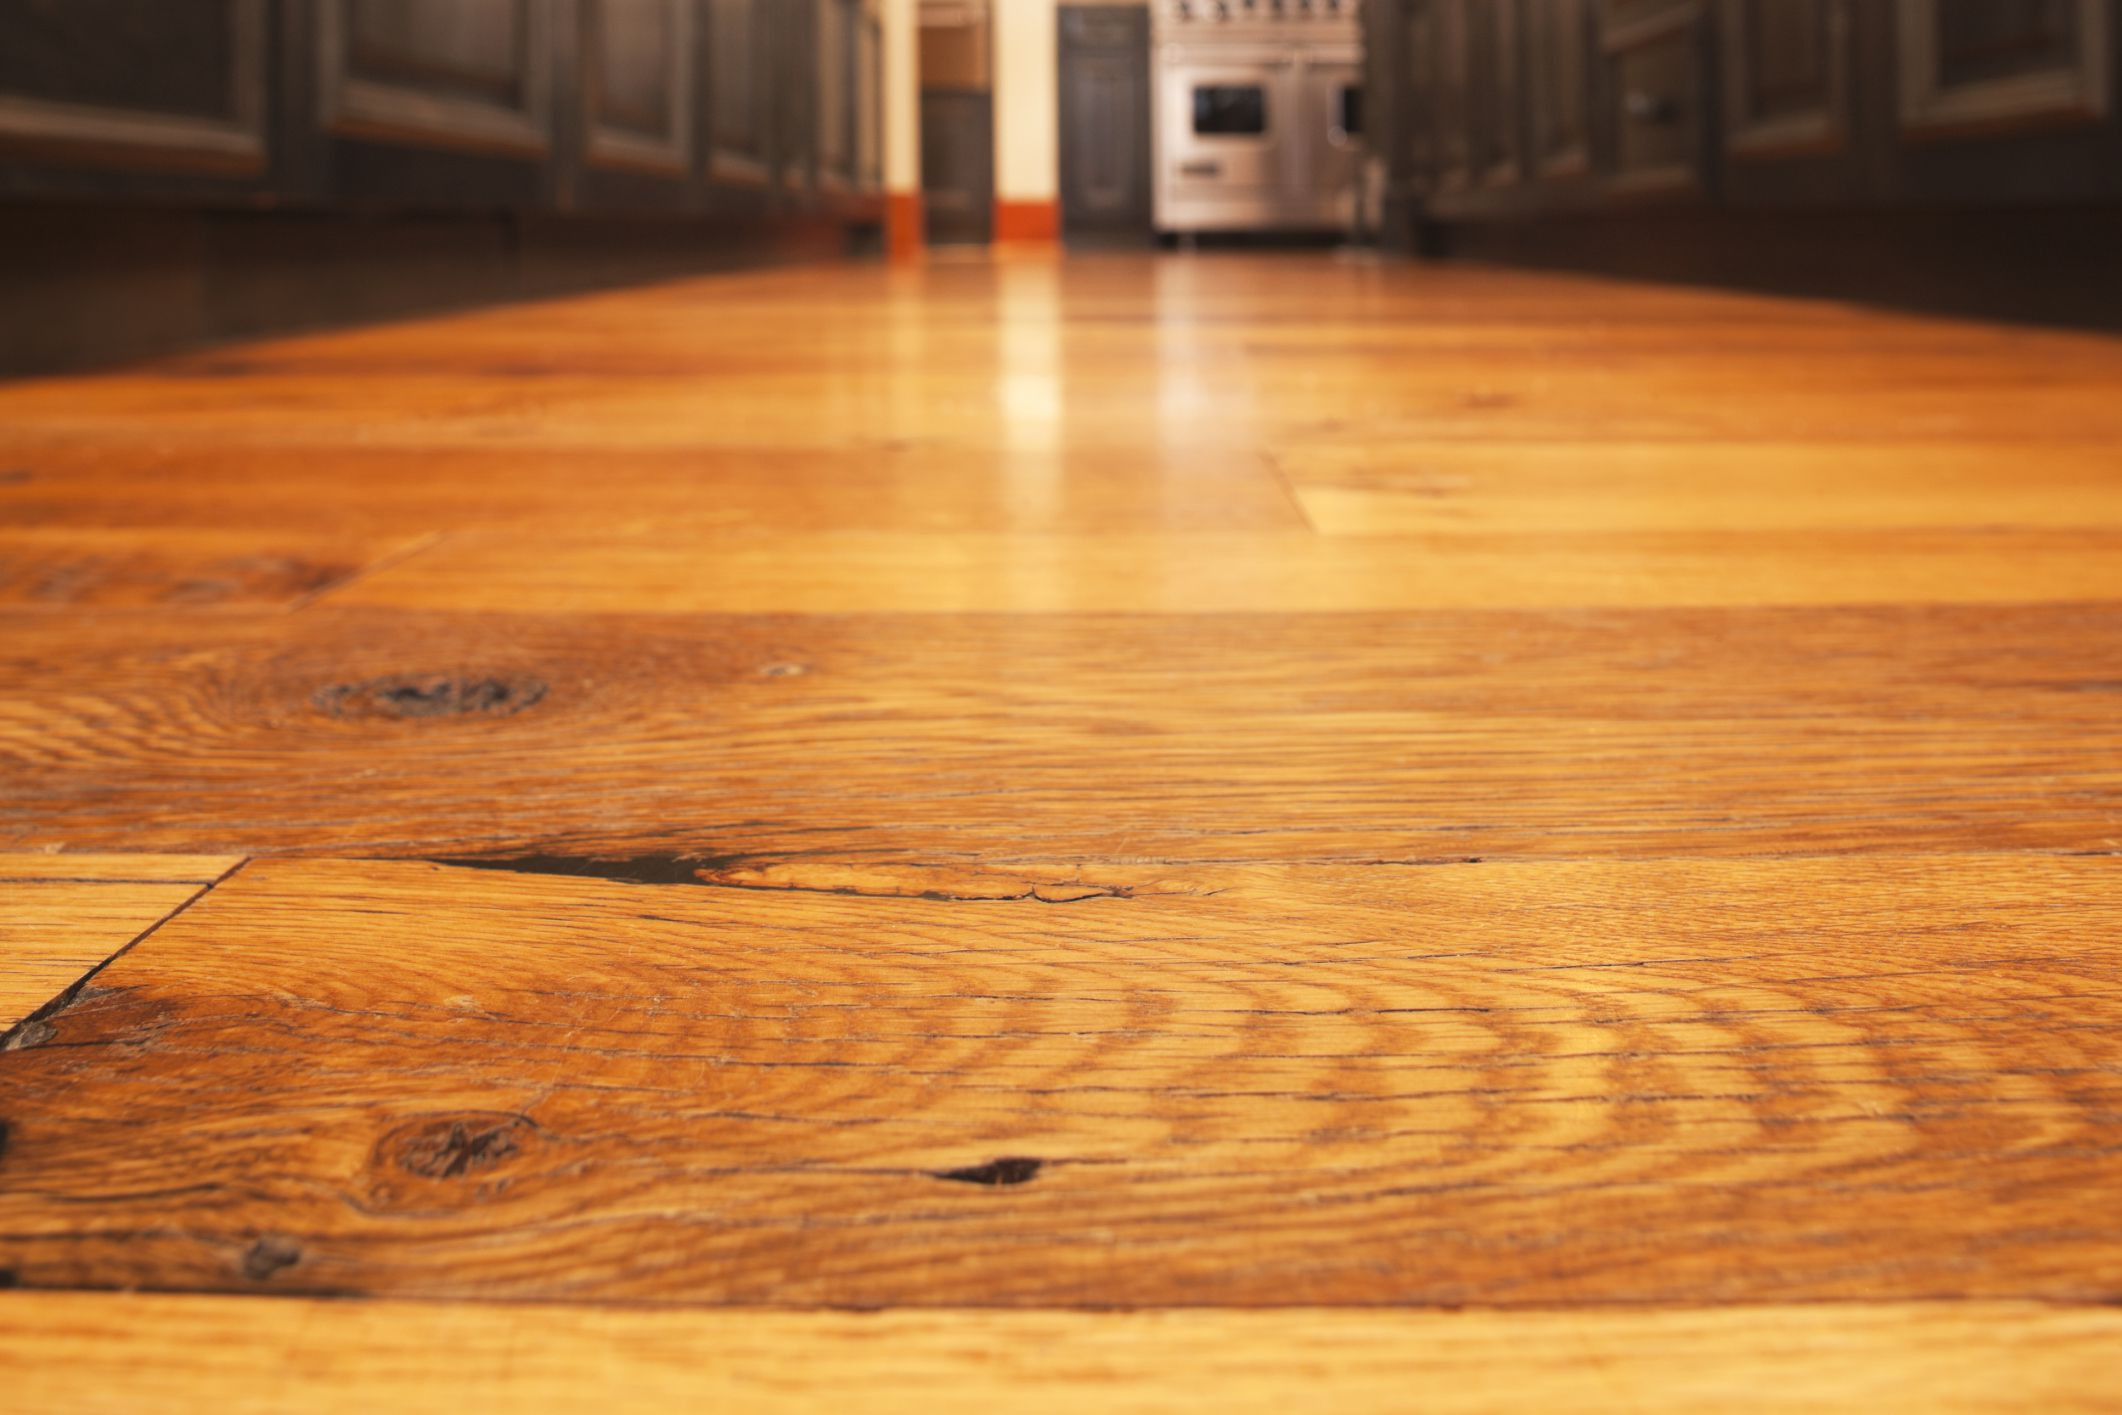 solid hardwood flooring cost of why a microbevel is on your flooring within wood floor closeup microbevel 56a4a13f5f9b58b7d0d7e5f4